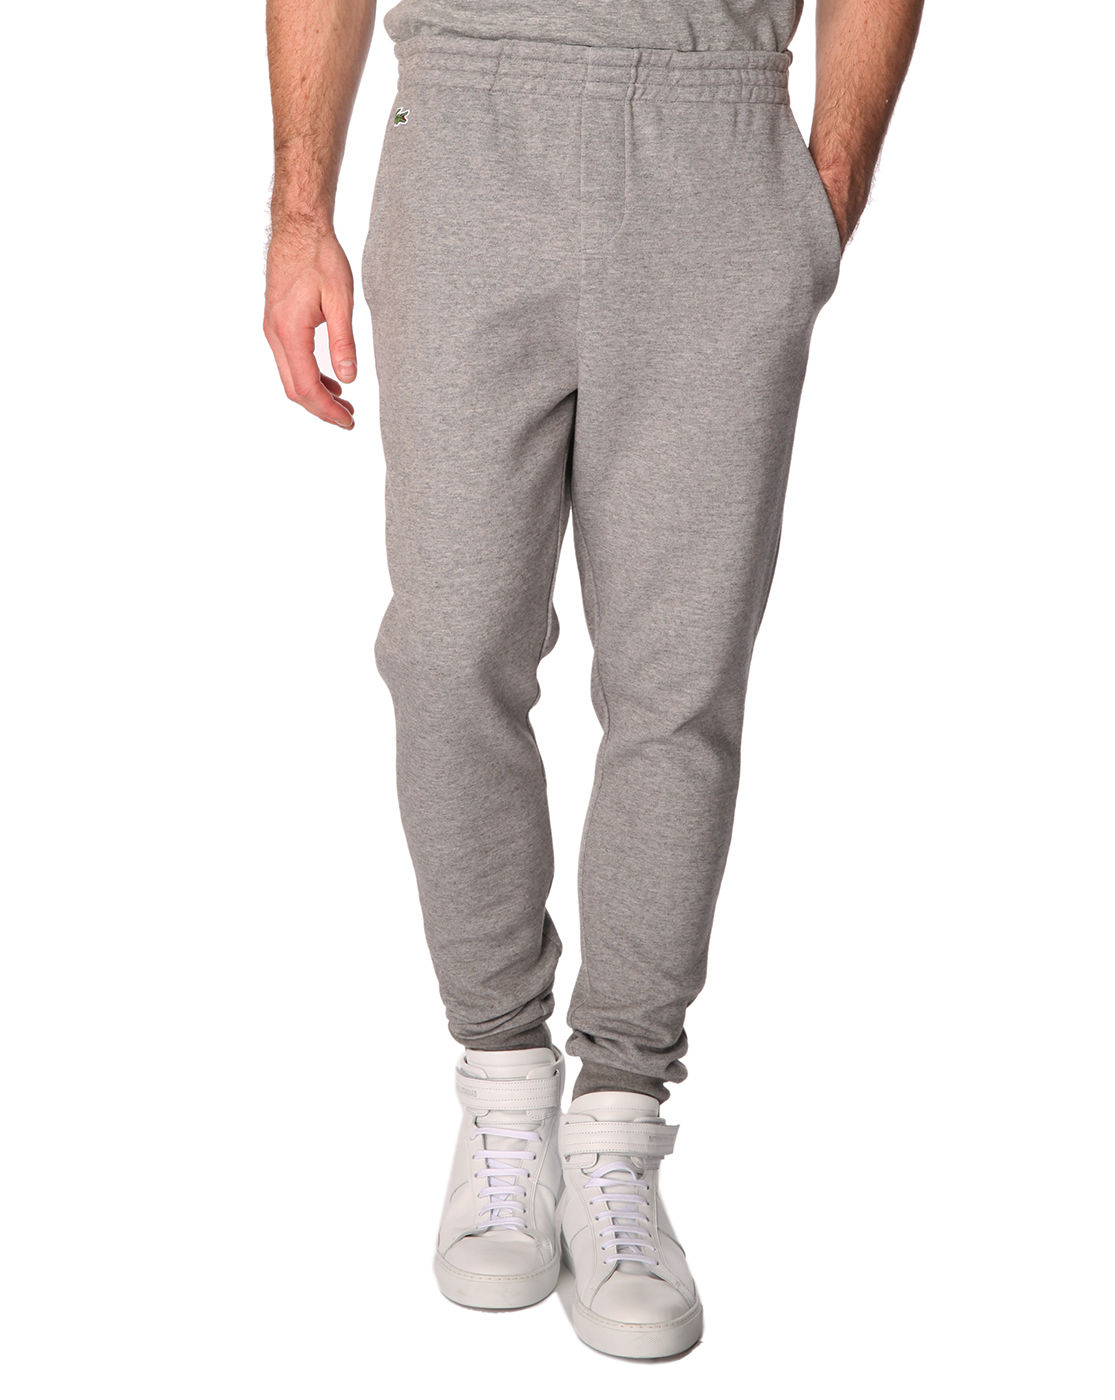 Lacoste Sport Marled Grey Jogging Trousers With Tight ...